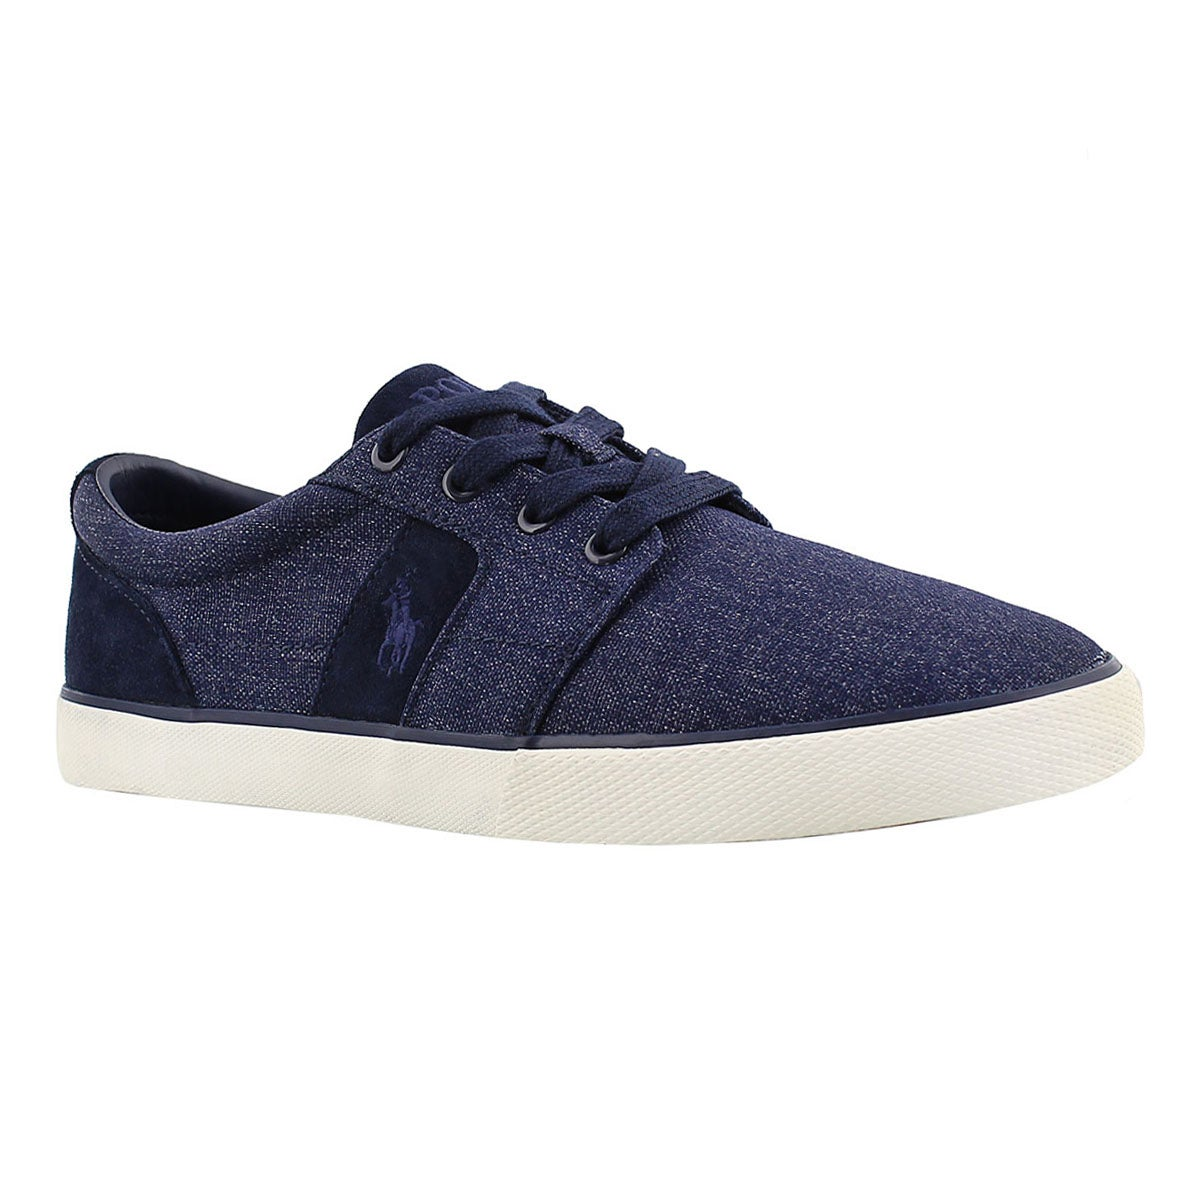 Men's HALMORE navy suede/nylon sneakers